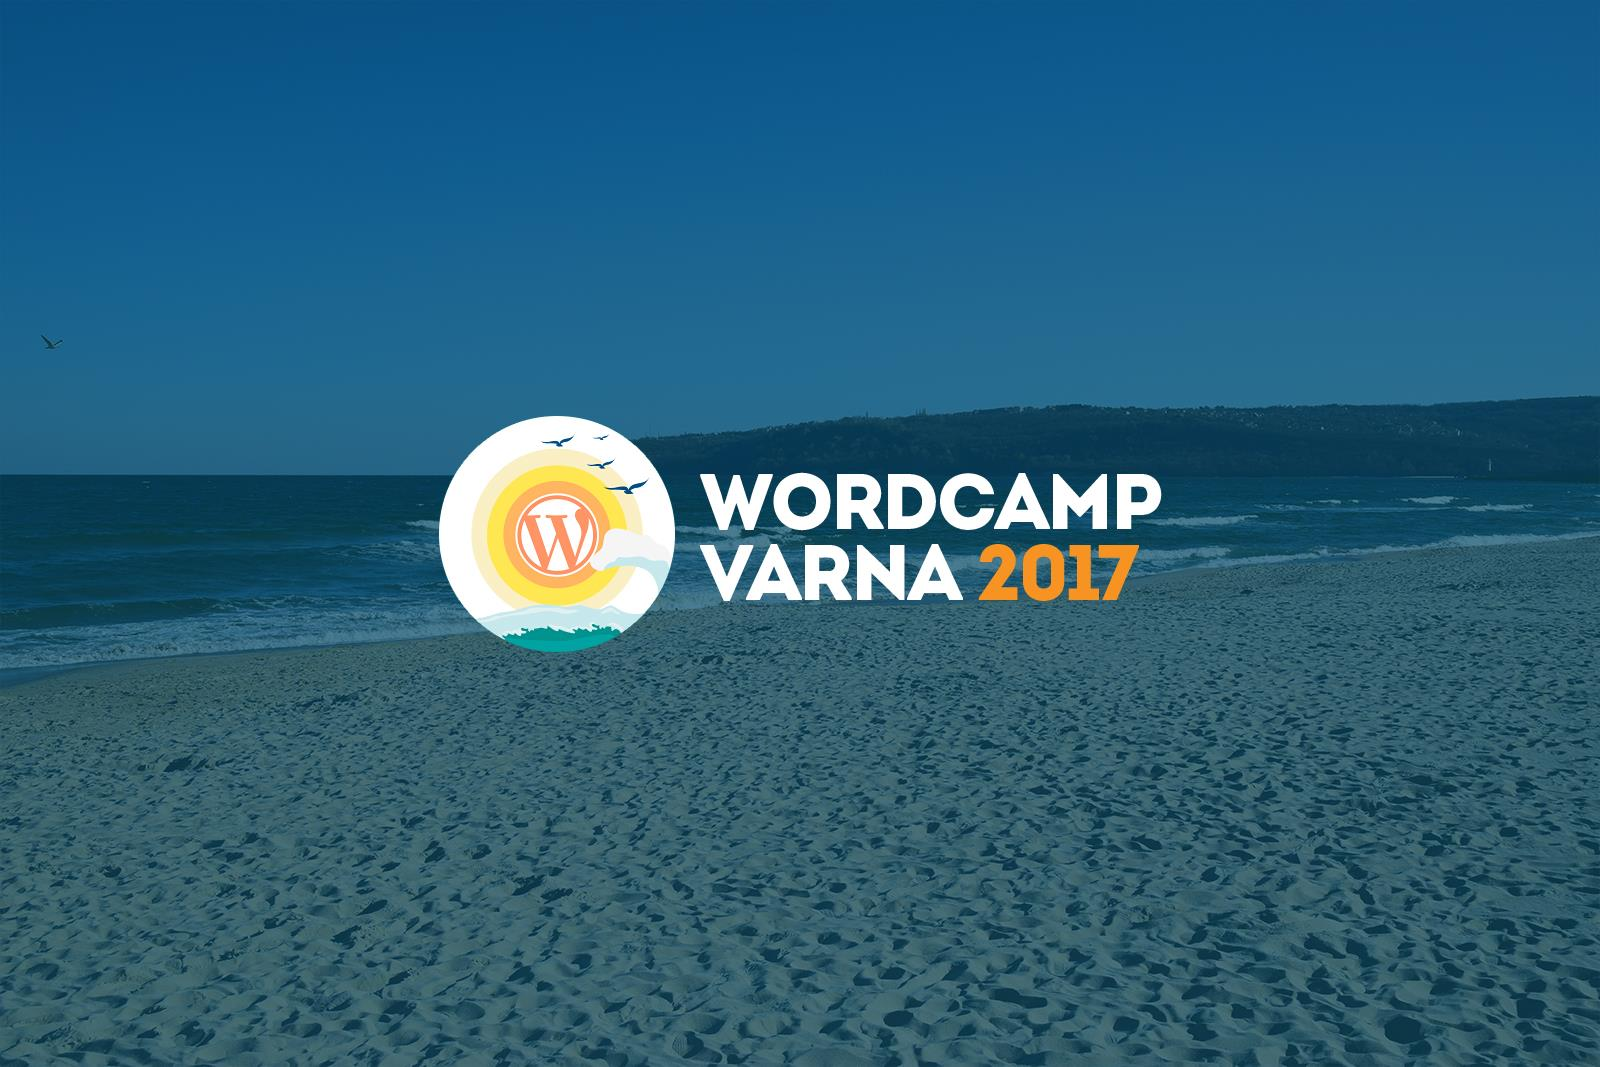 WordCampVarna 2017